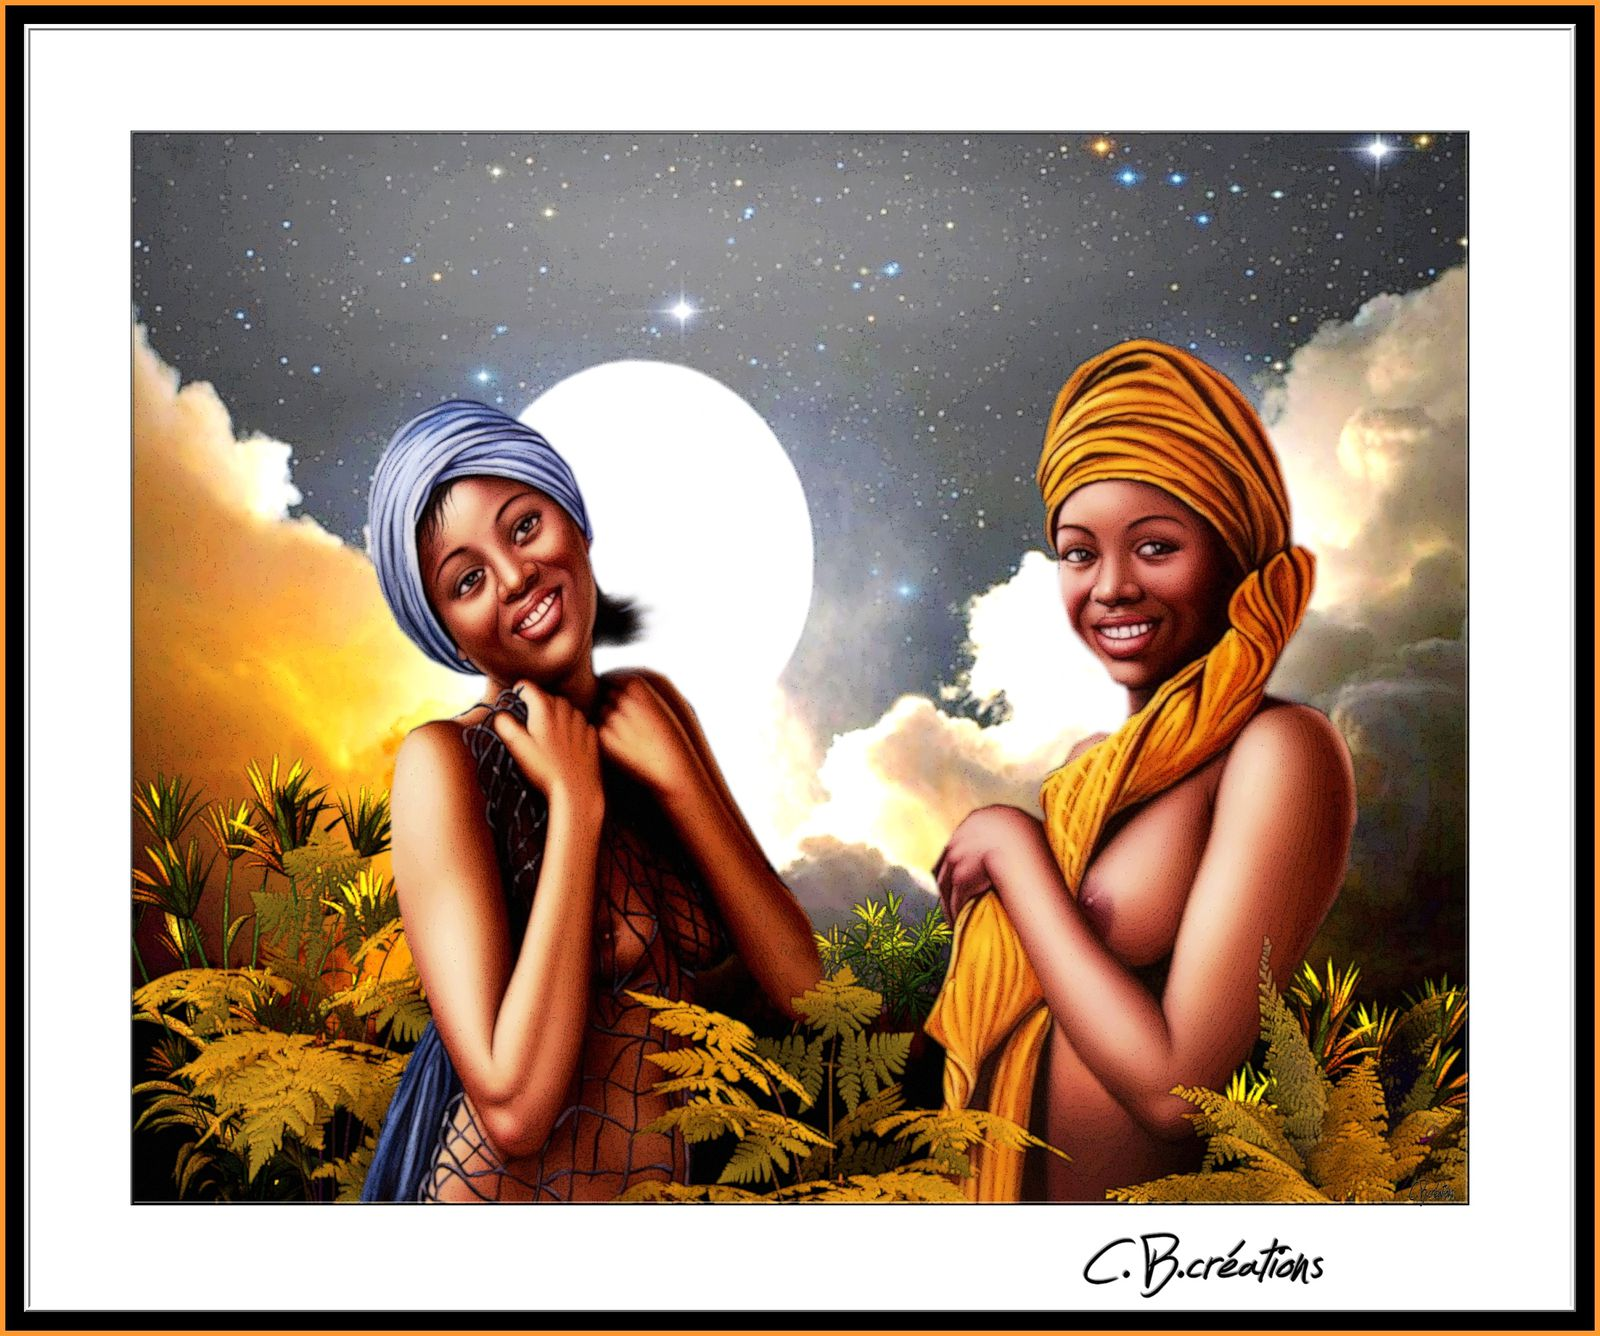 http://idata.over-blog.com/3/91/86/55/TENDRESSE/COULEUR-AFRICAINE/146.jpg